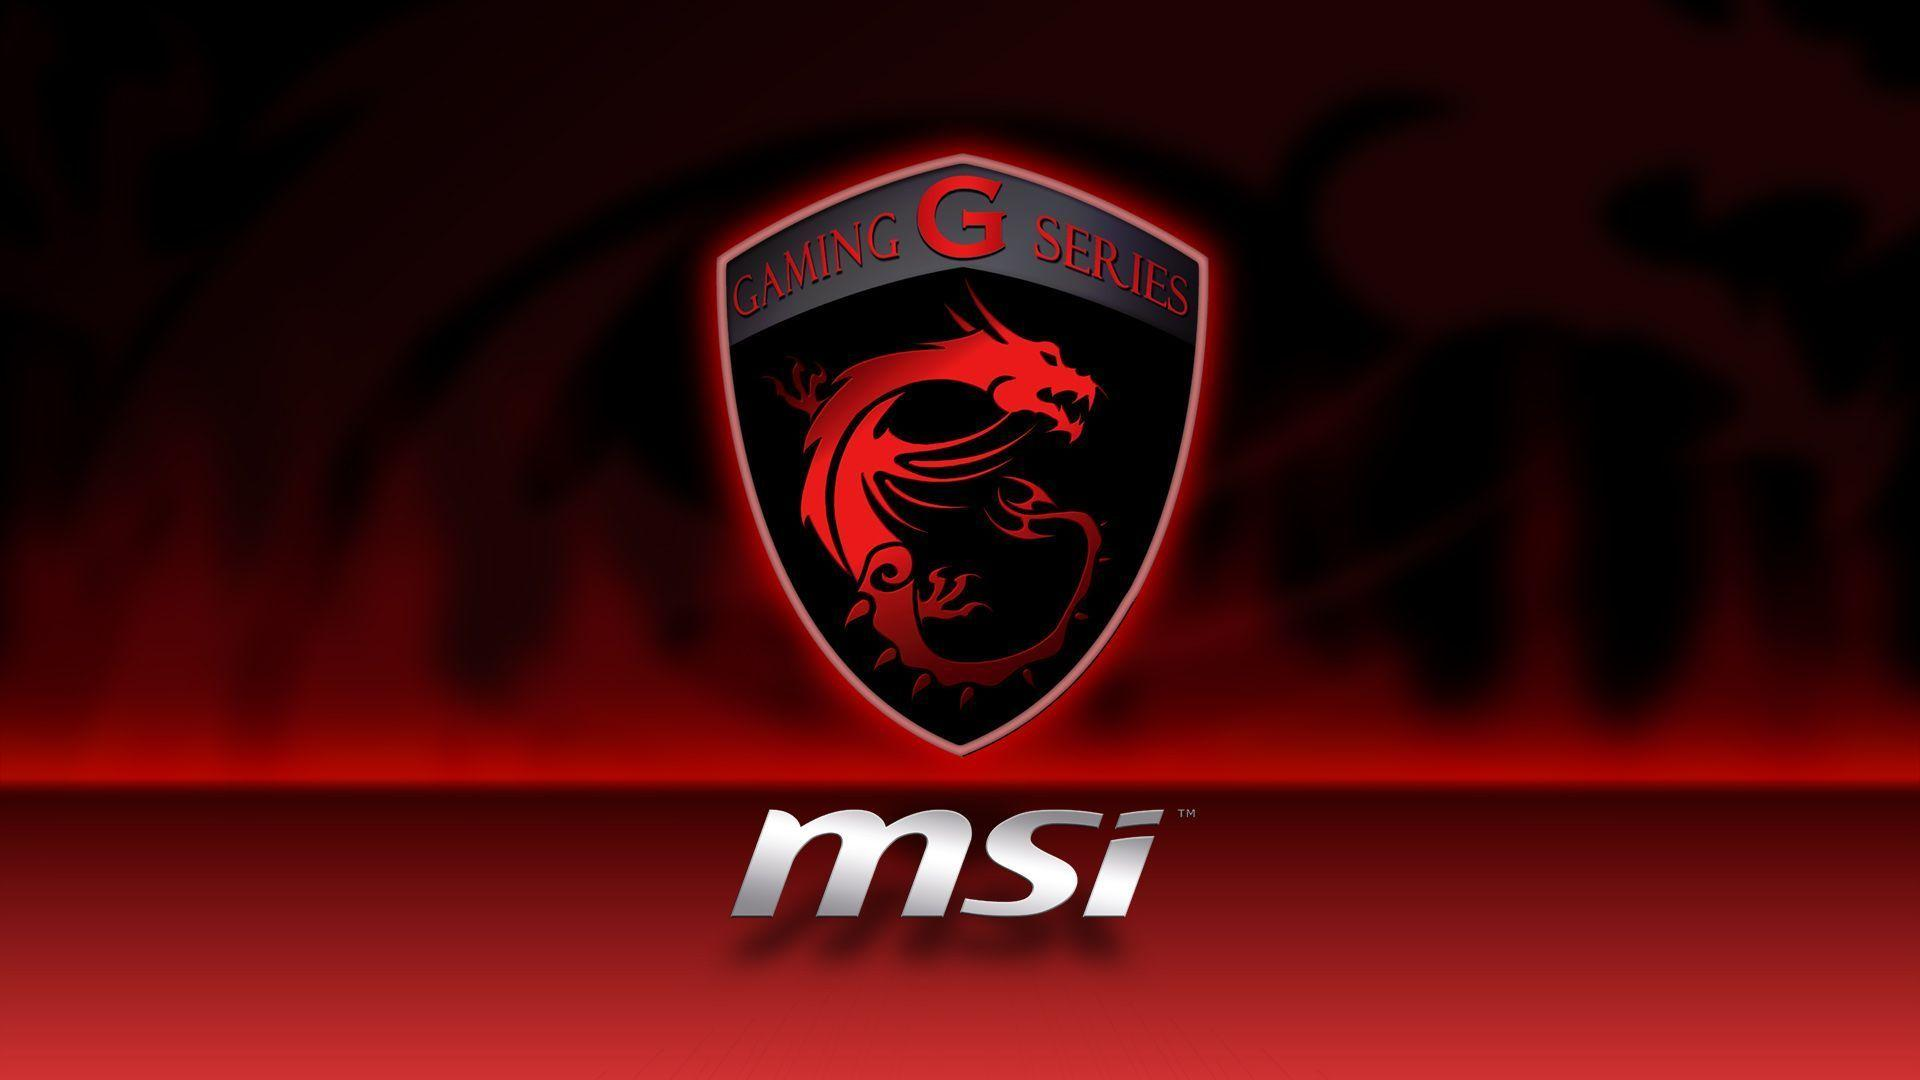 Msi Z270 Gaming Pro Carbon Hd Wallpaper: Wallpaper Cave